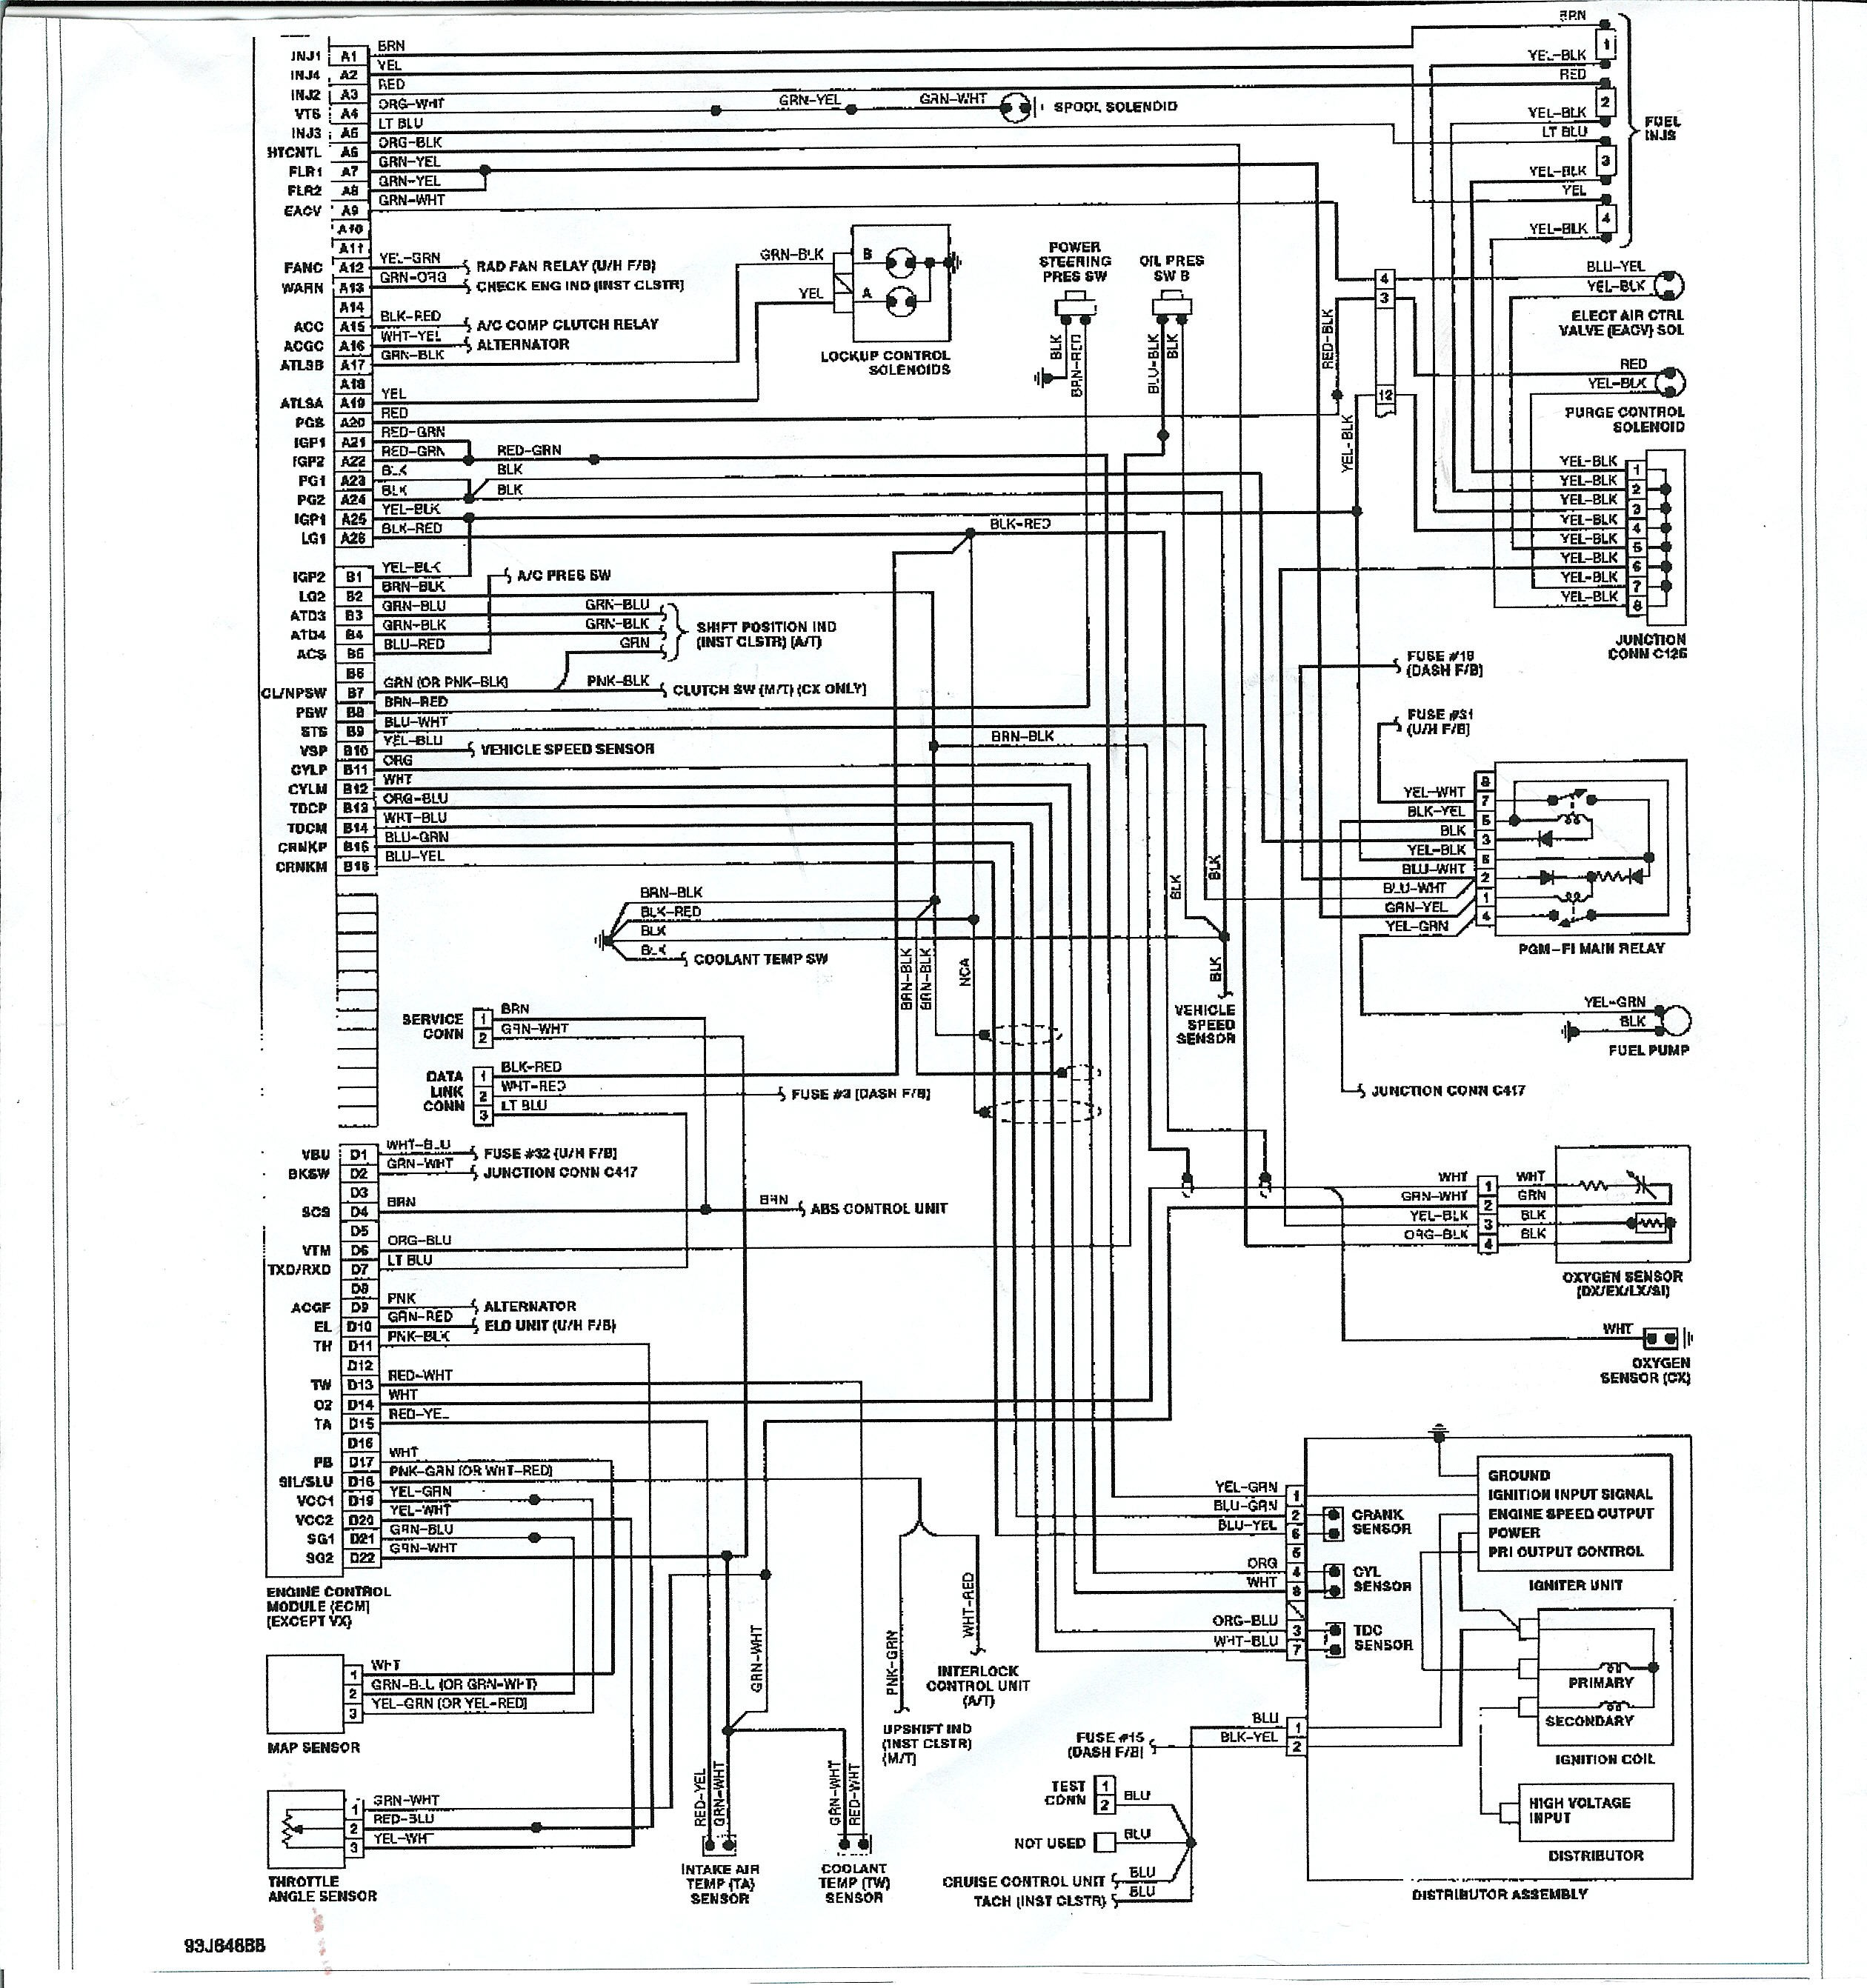 Ecu Wiring Diagram 95 Toyota 4runner - Trusted Schematic Diagrams •